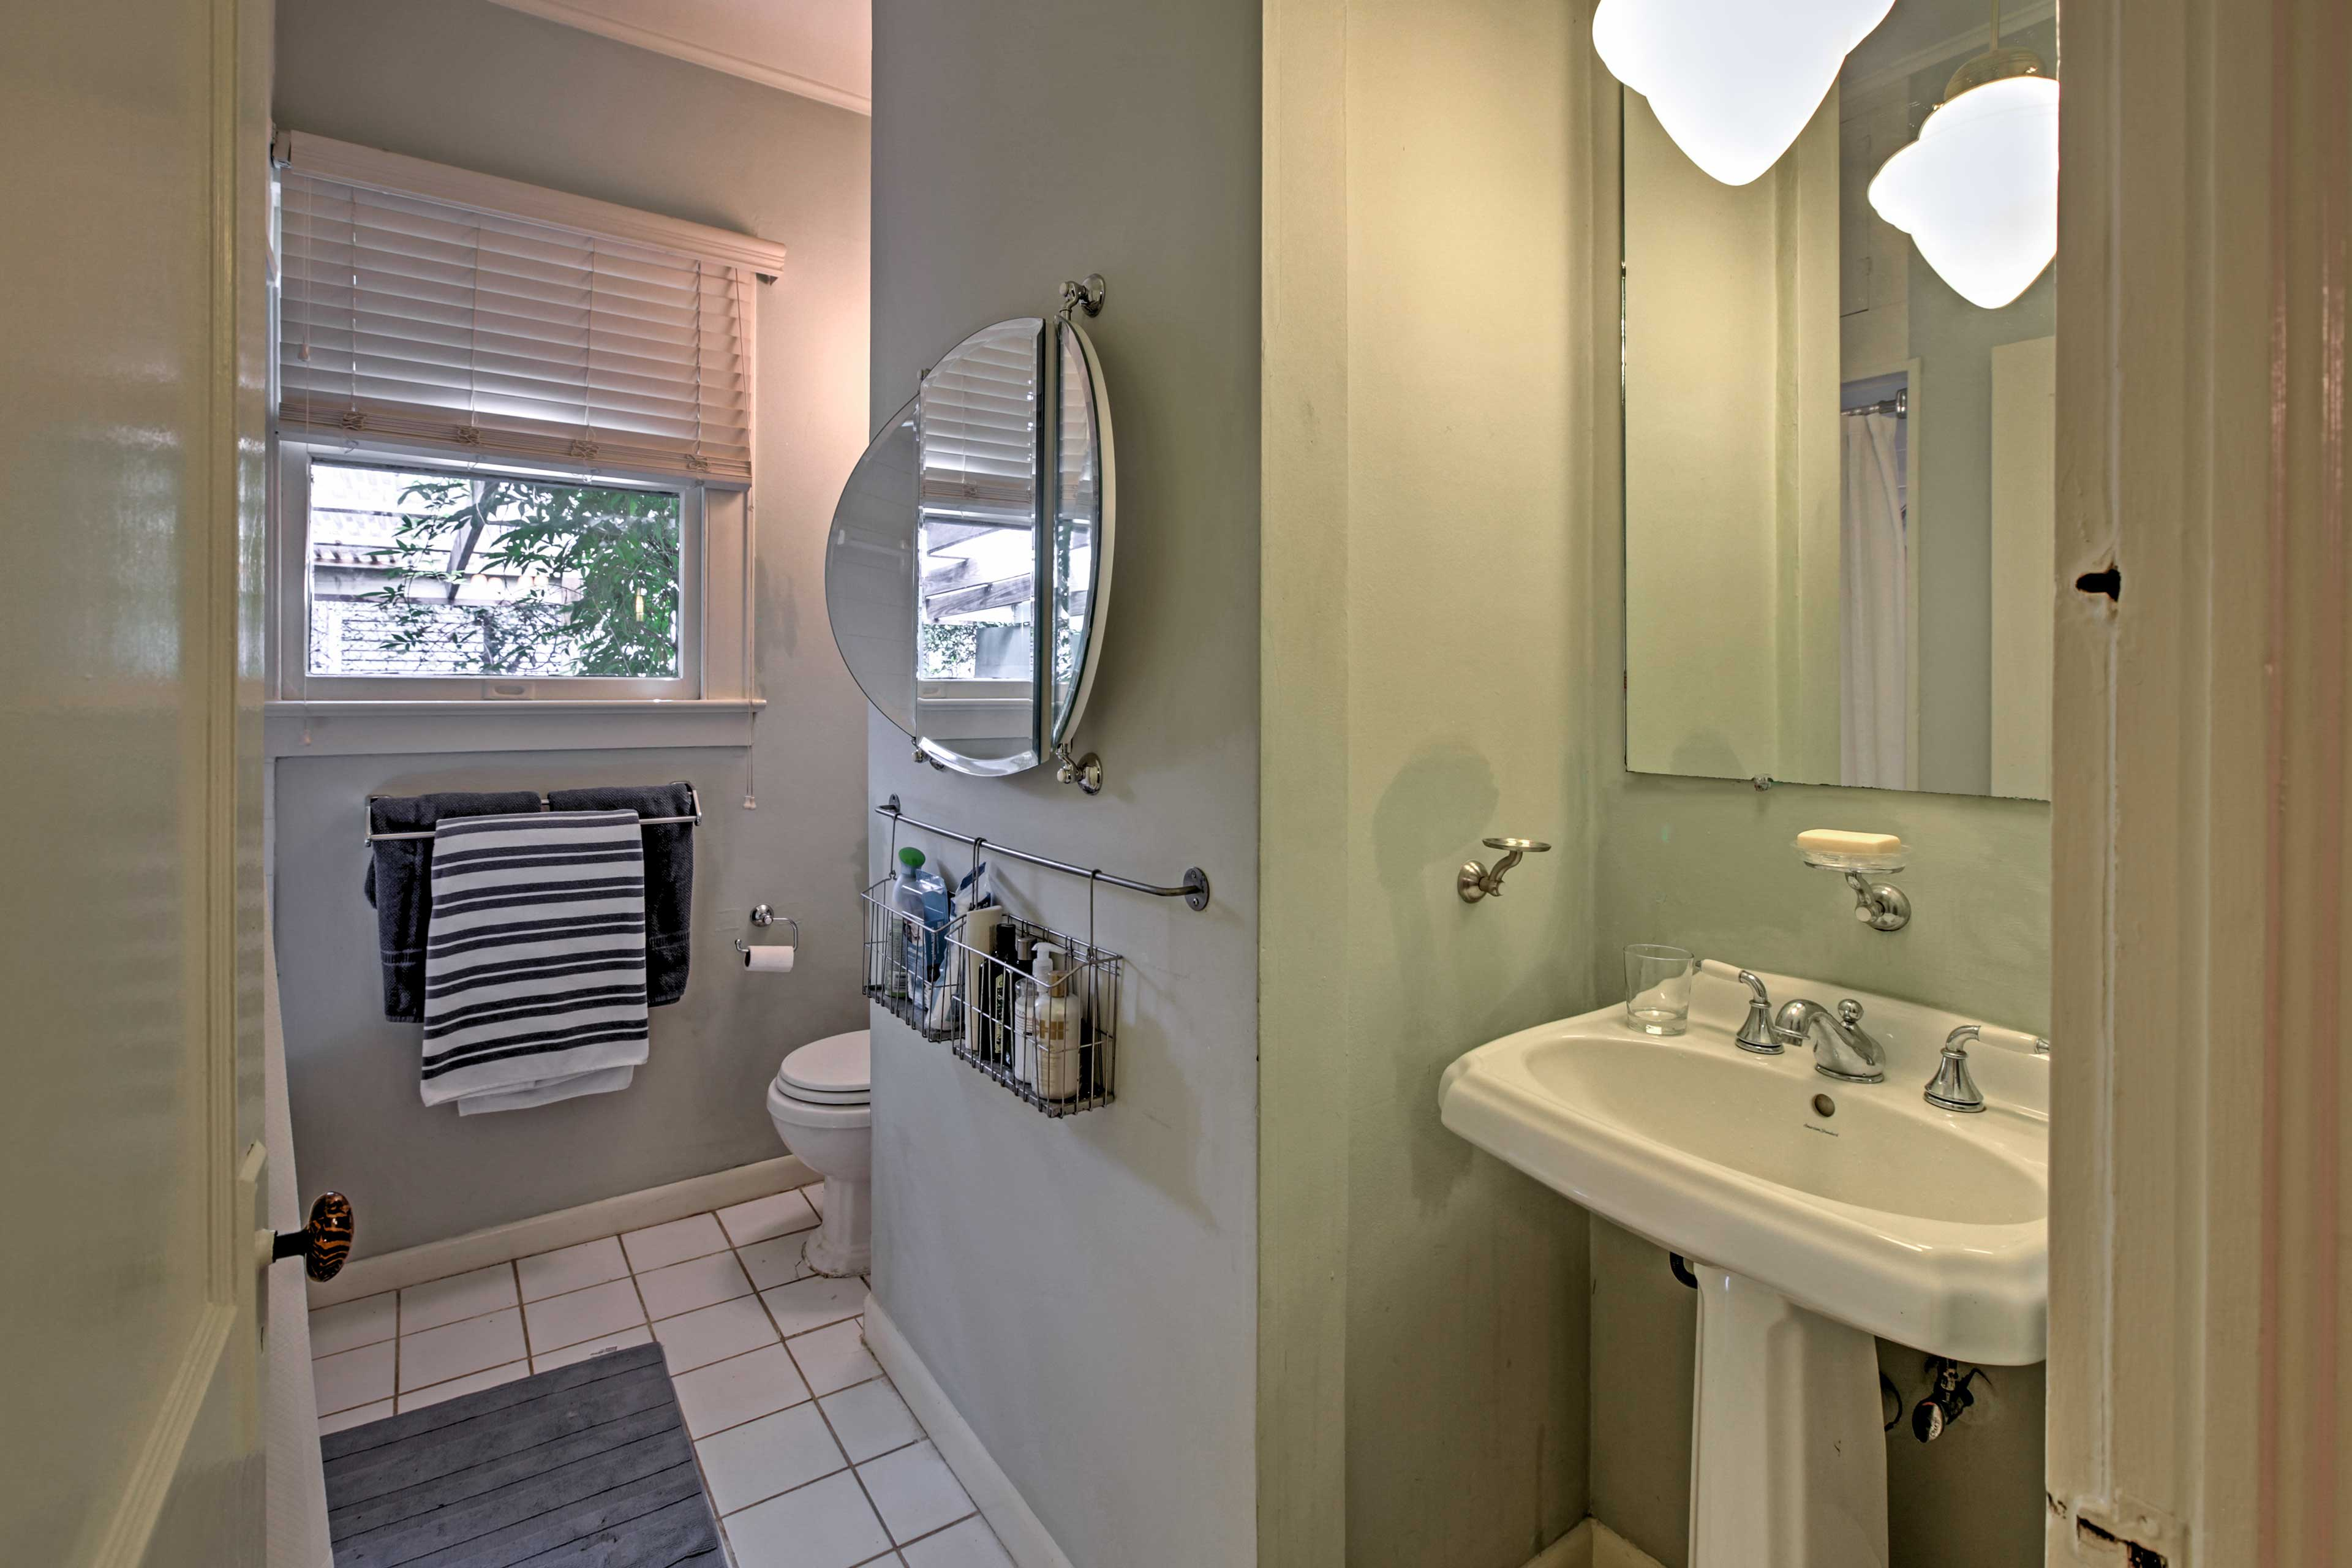 Get ready for a night out on the town in the pristine bathroom.